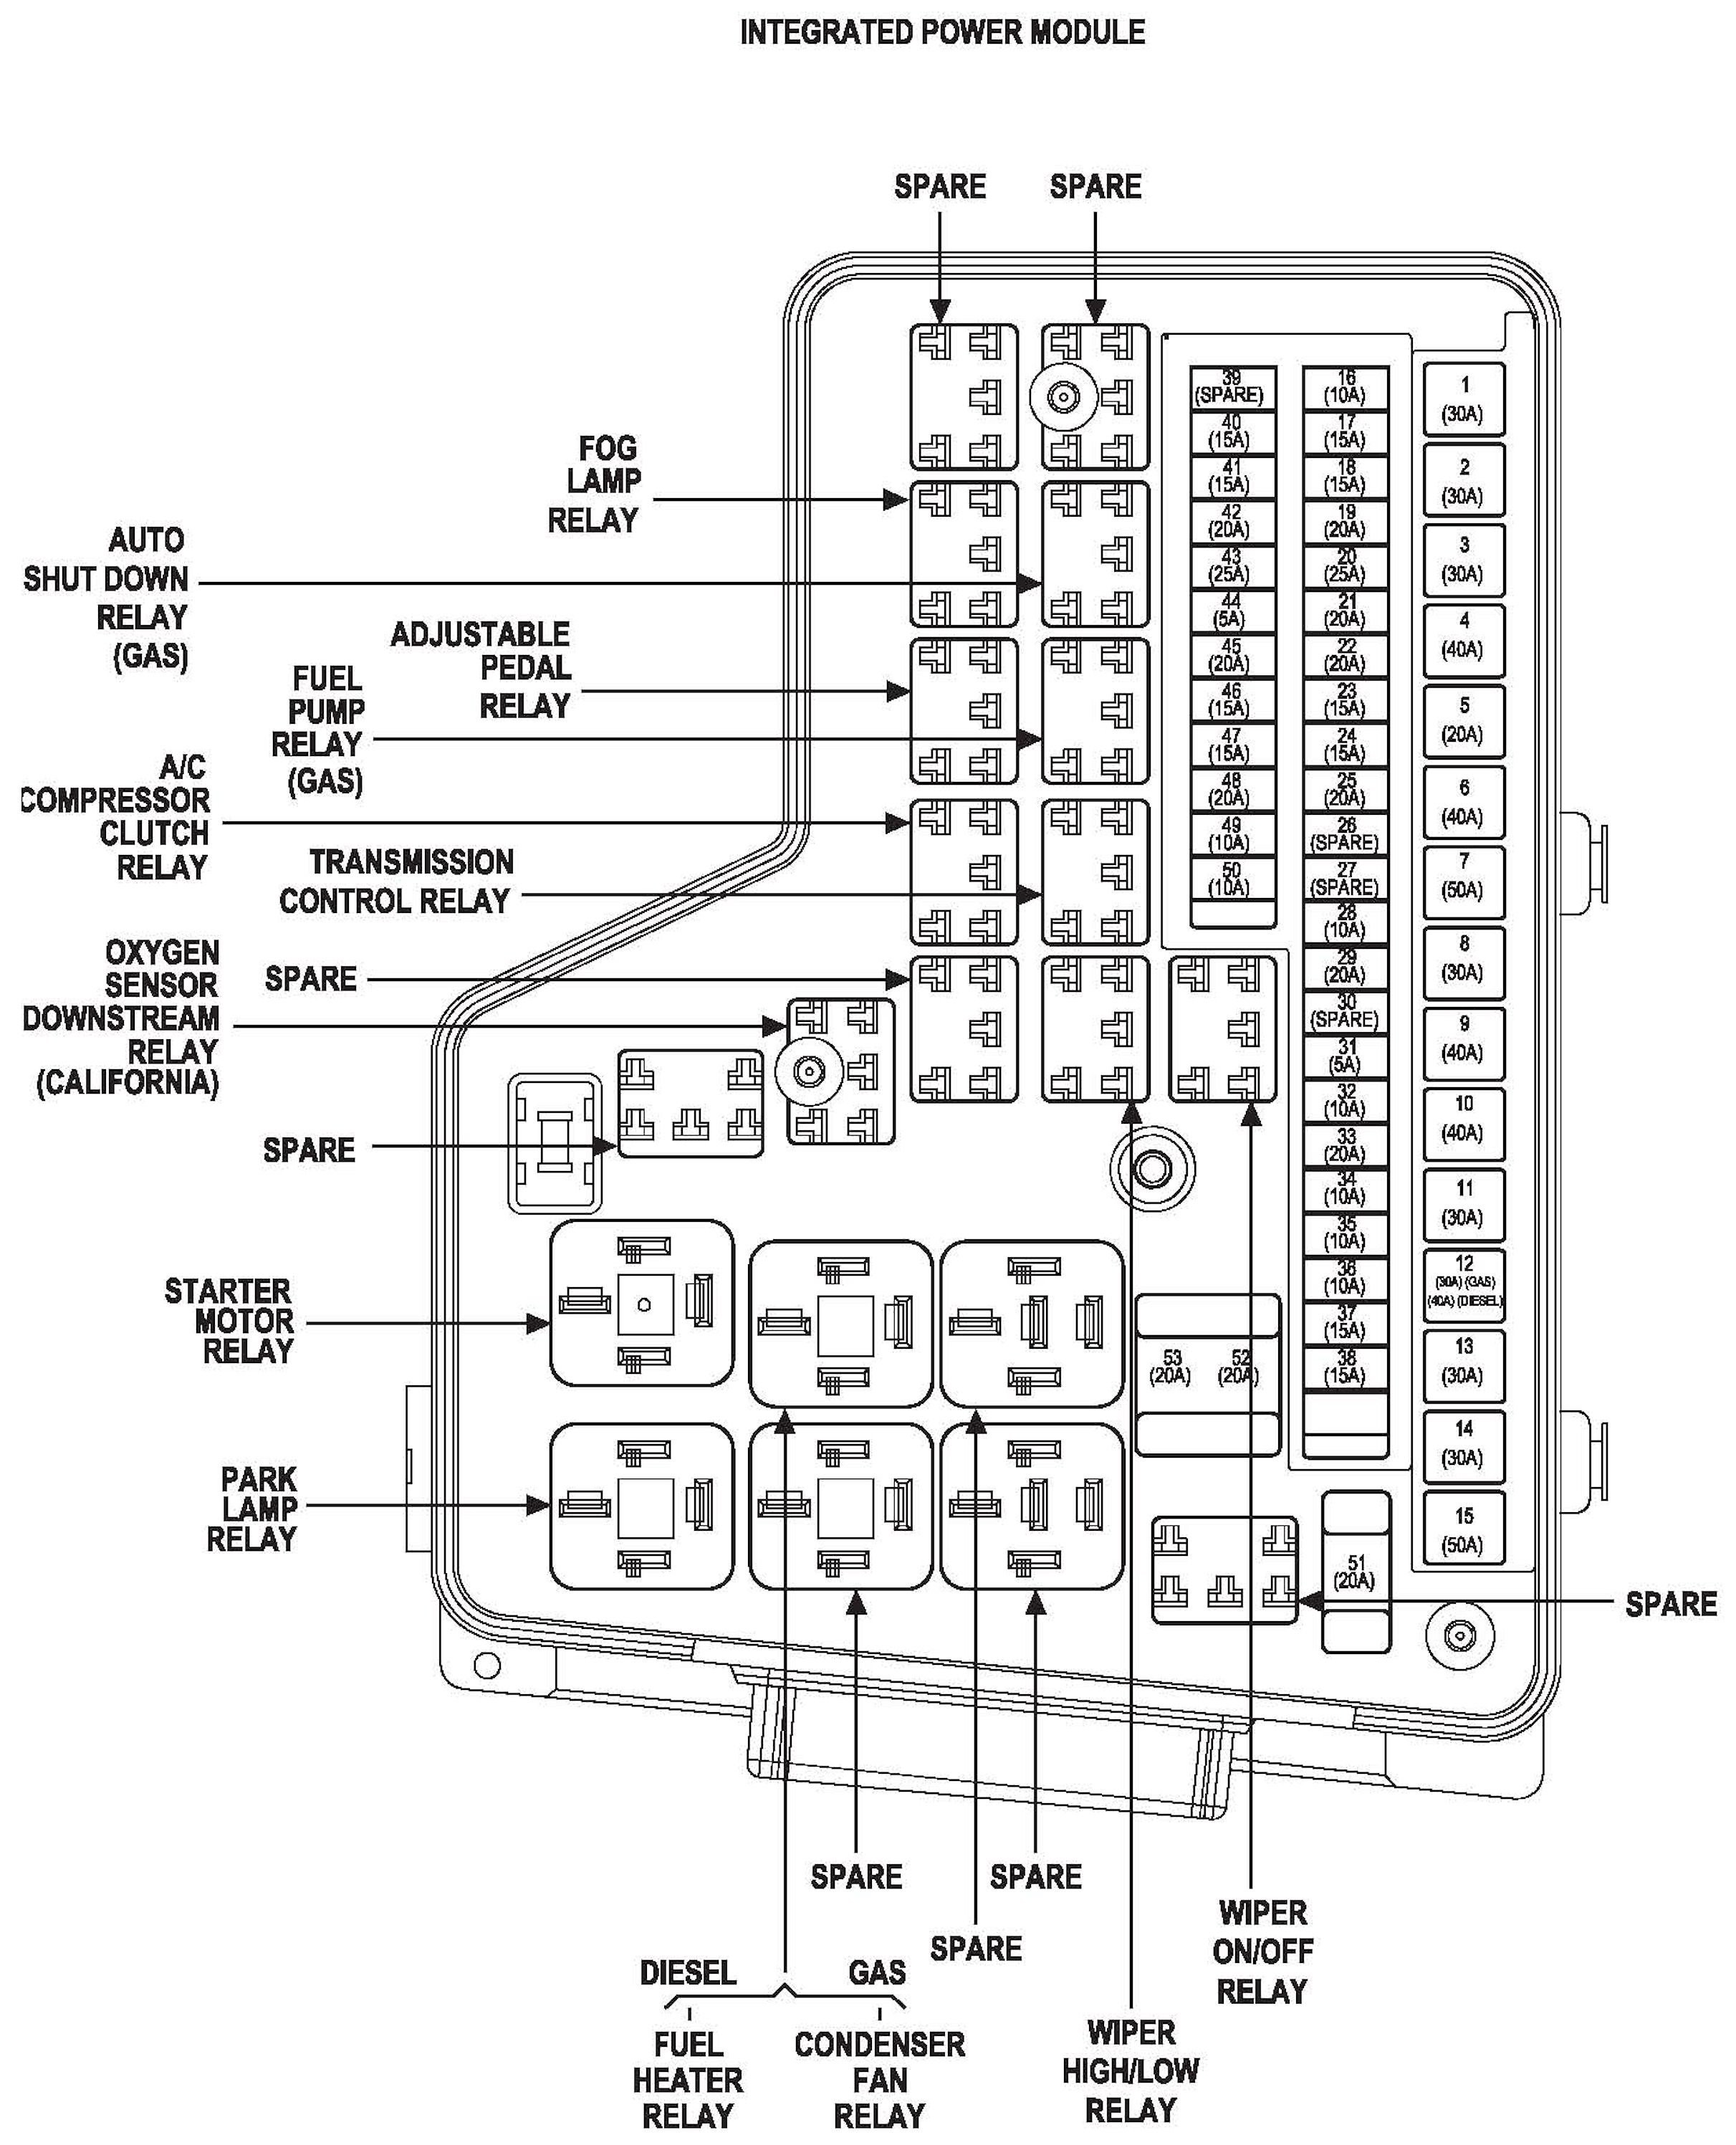 2011 dodge ram 3500 fuse box diagram electrical work wiring diagram u2022 rh wiringdiagramshop today 2012 dodge cummins fuse box diagram